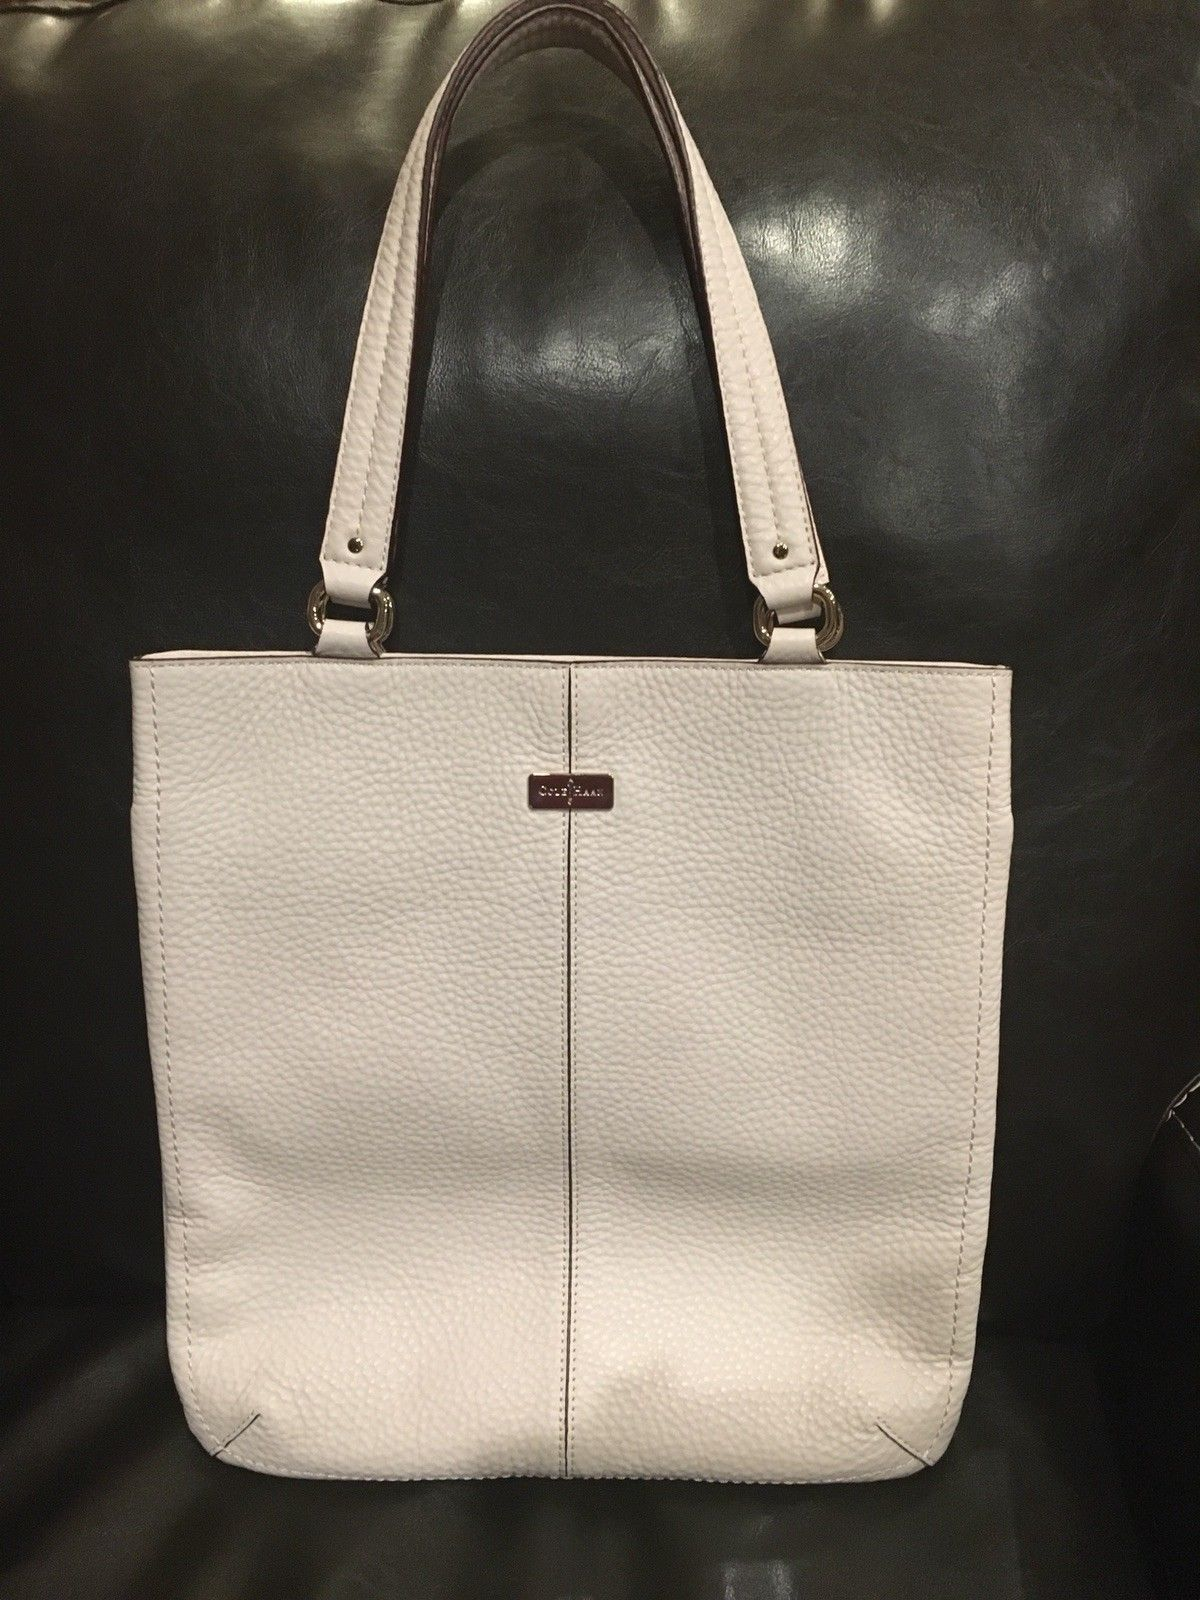 d0b95f441d COLE HAAN Village Light Pink Pebble Leather Women's Flat Tote Bag PRISTINE  COND.